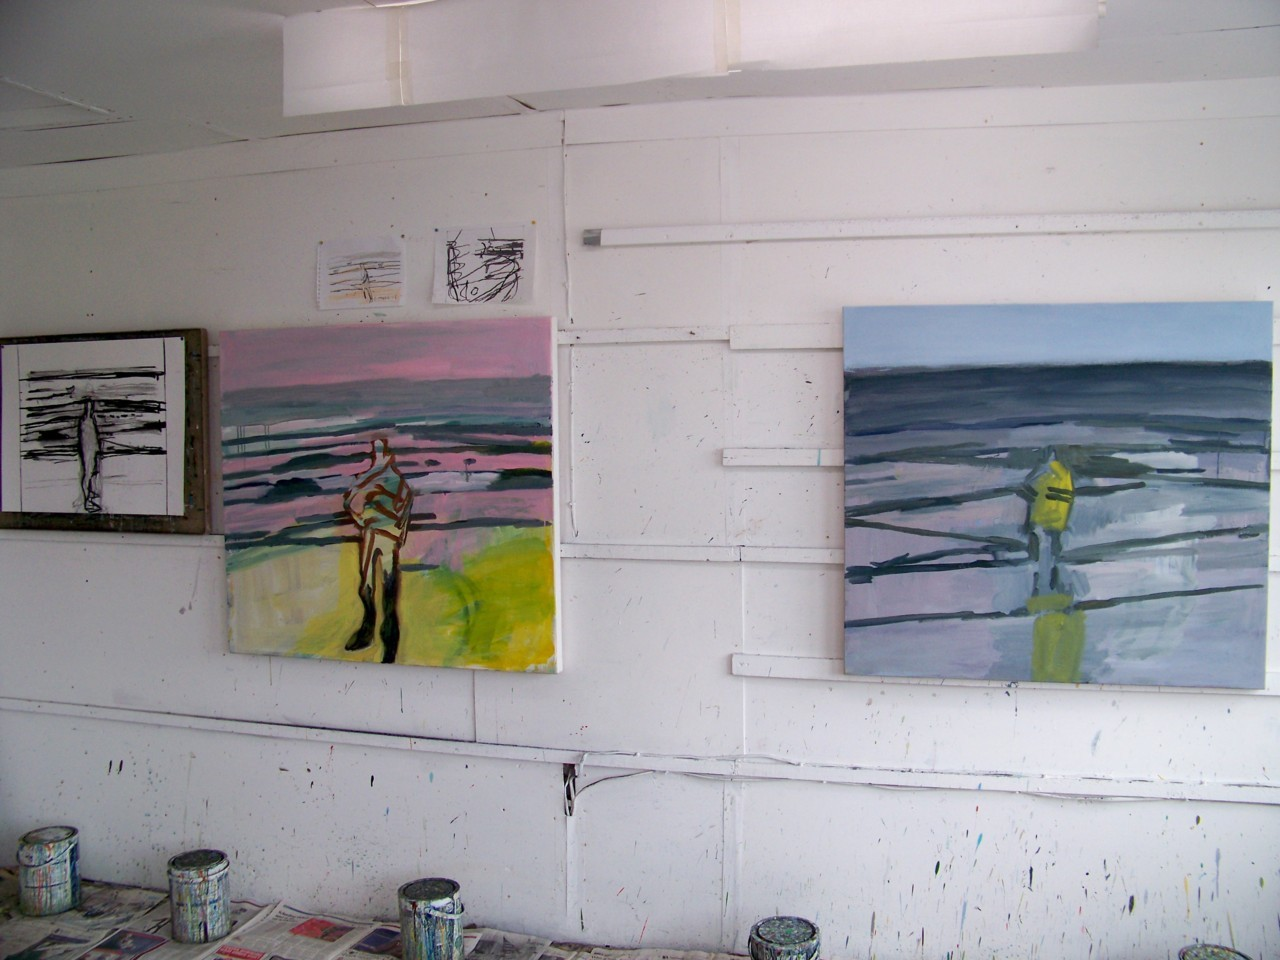 4th May 2012. The studio this morning. Yesterday I was making drawings of two people fishing from the beach; the painting on the right has been adjusted to include one of them. I have put the figure back in the pink painting on the left after discussing the current work with Stephen Walton earlier this week.